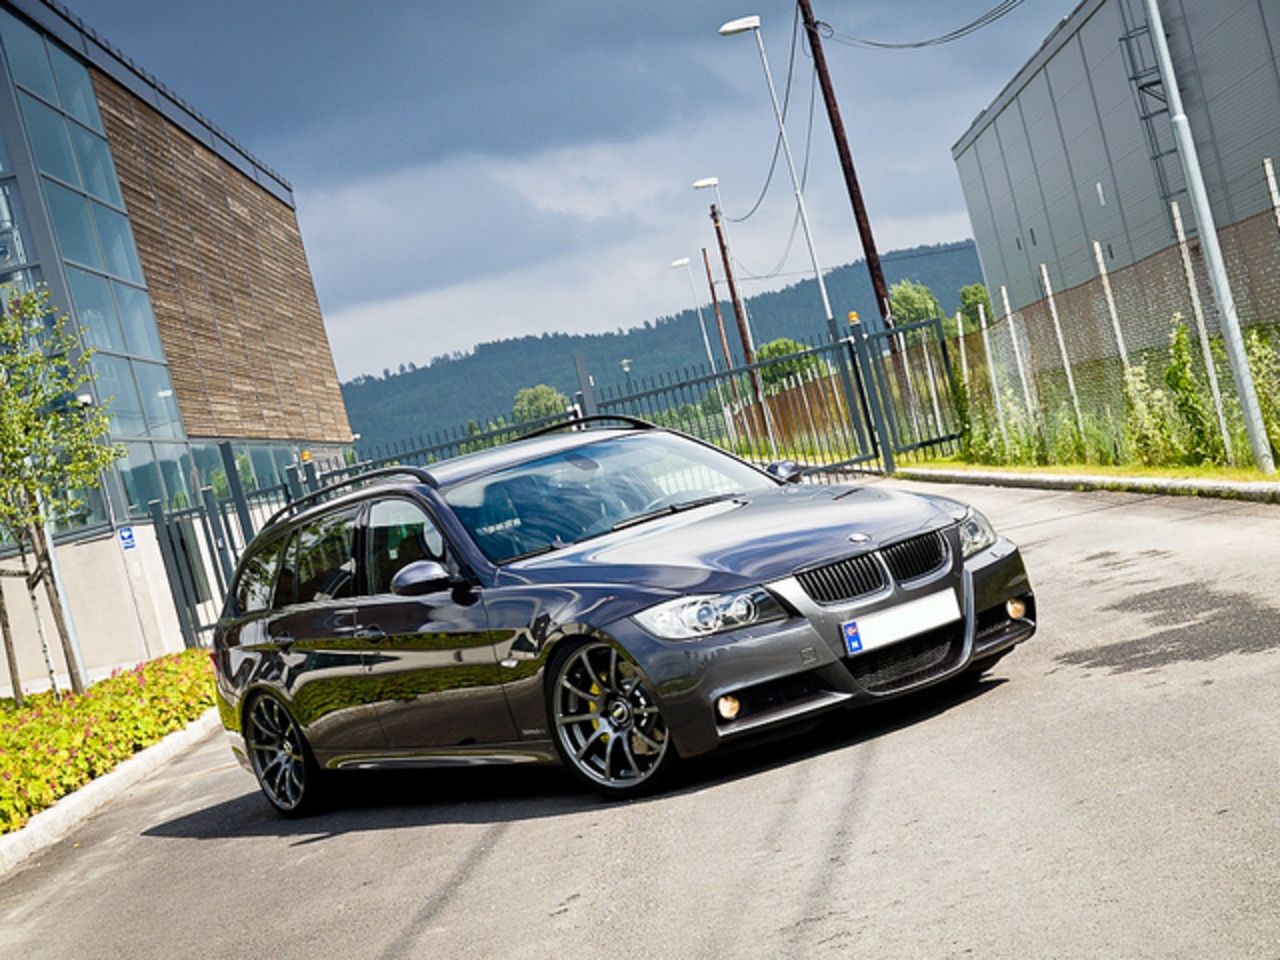 BMW 325D E91 | Flickr - Photo Sharing!